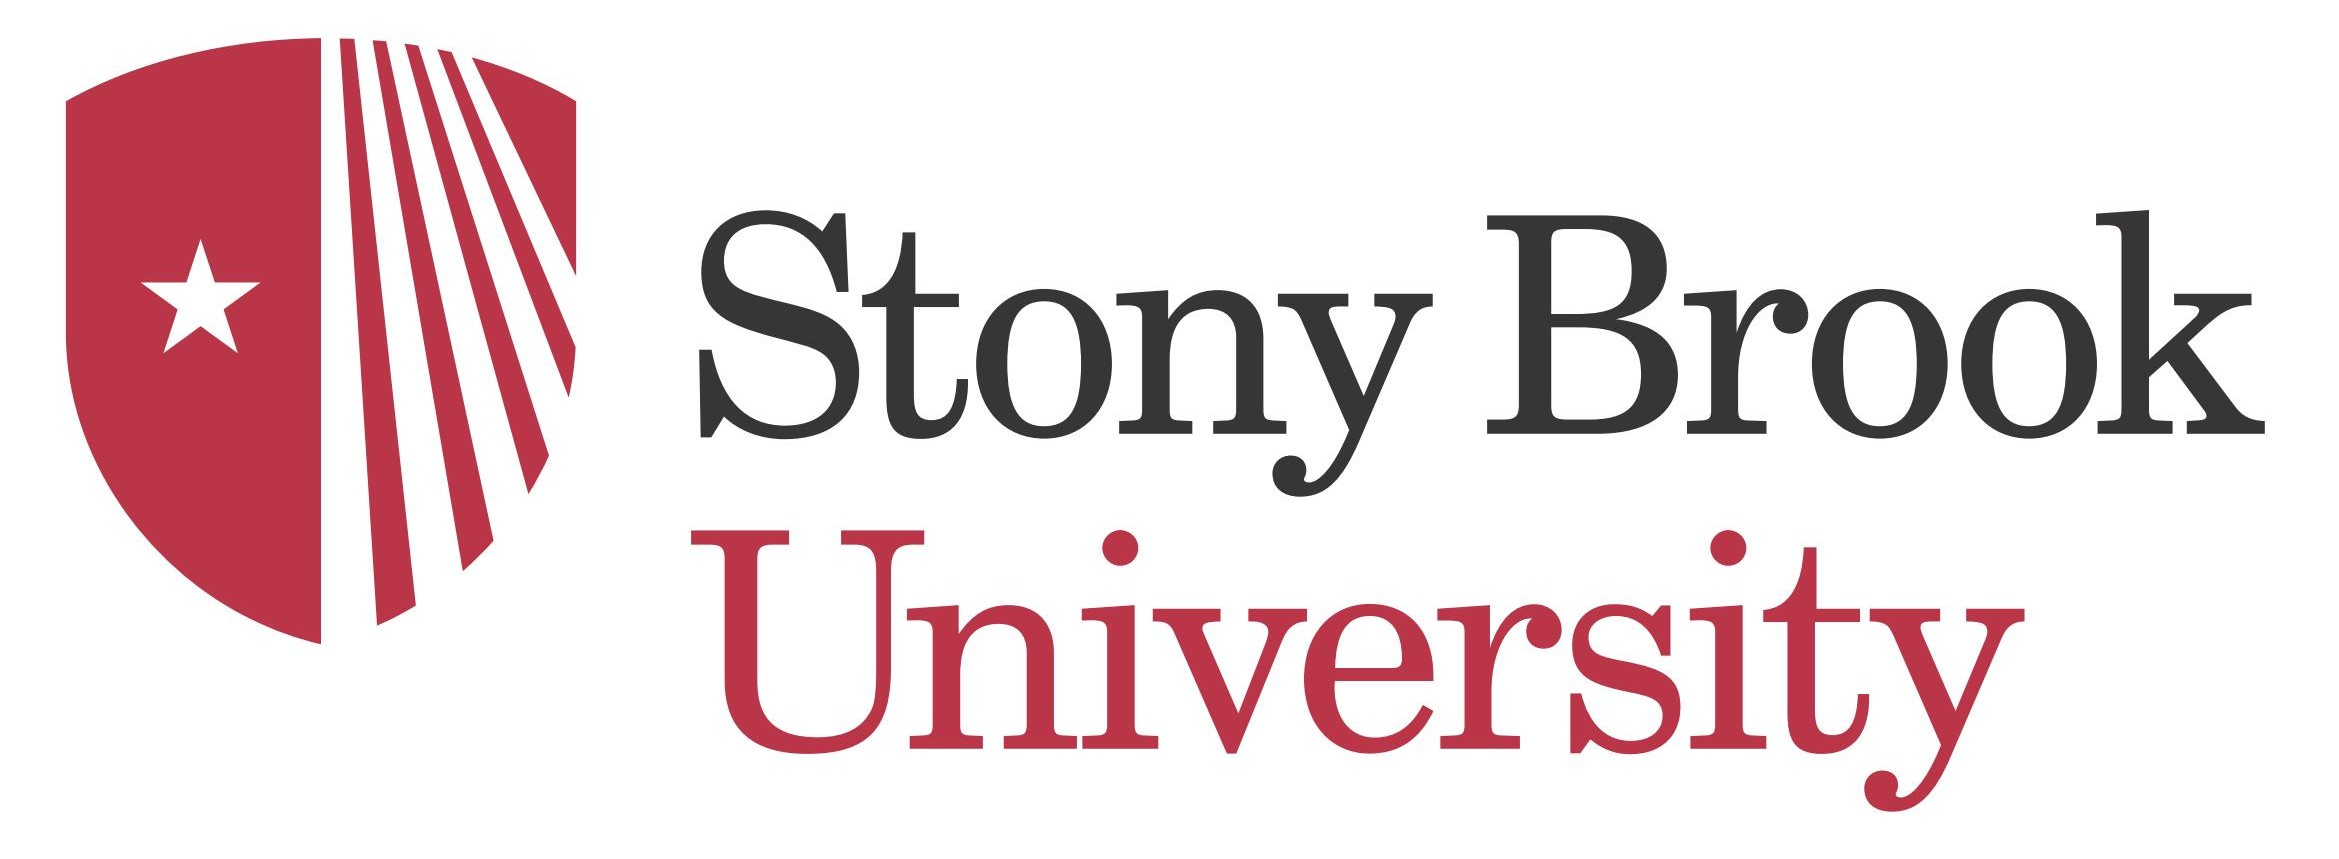 Stony brook university logo 1